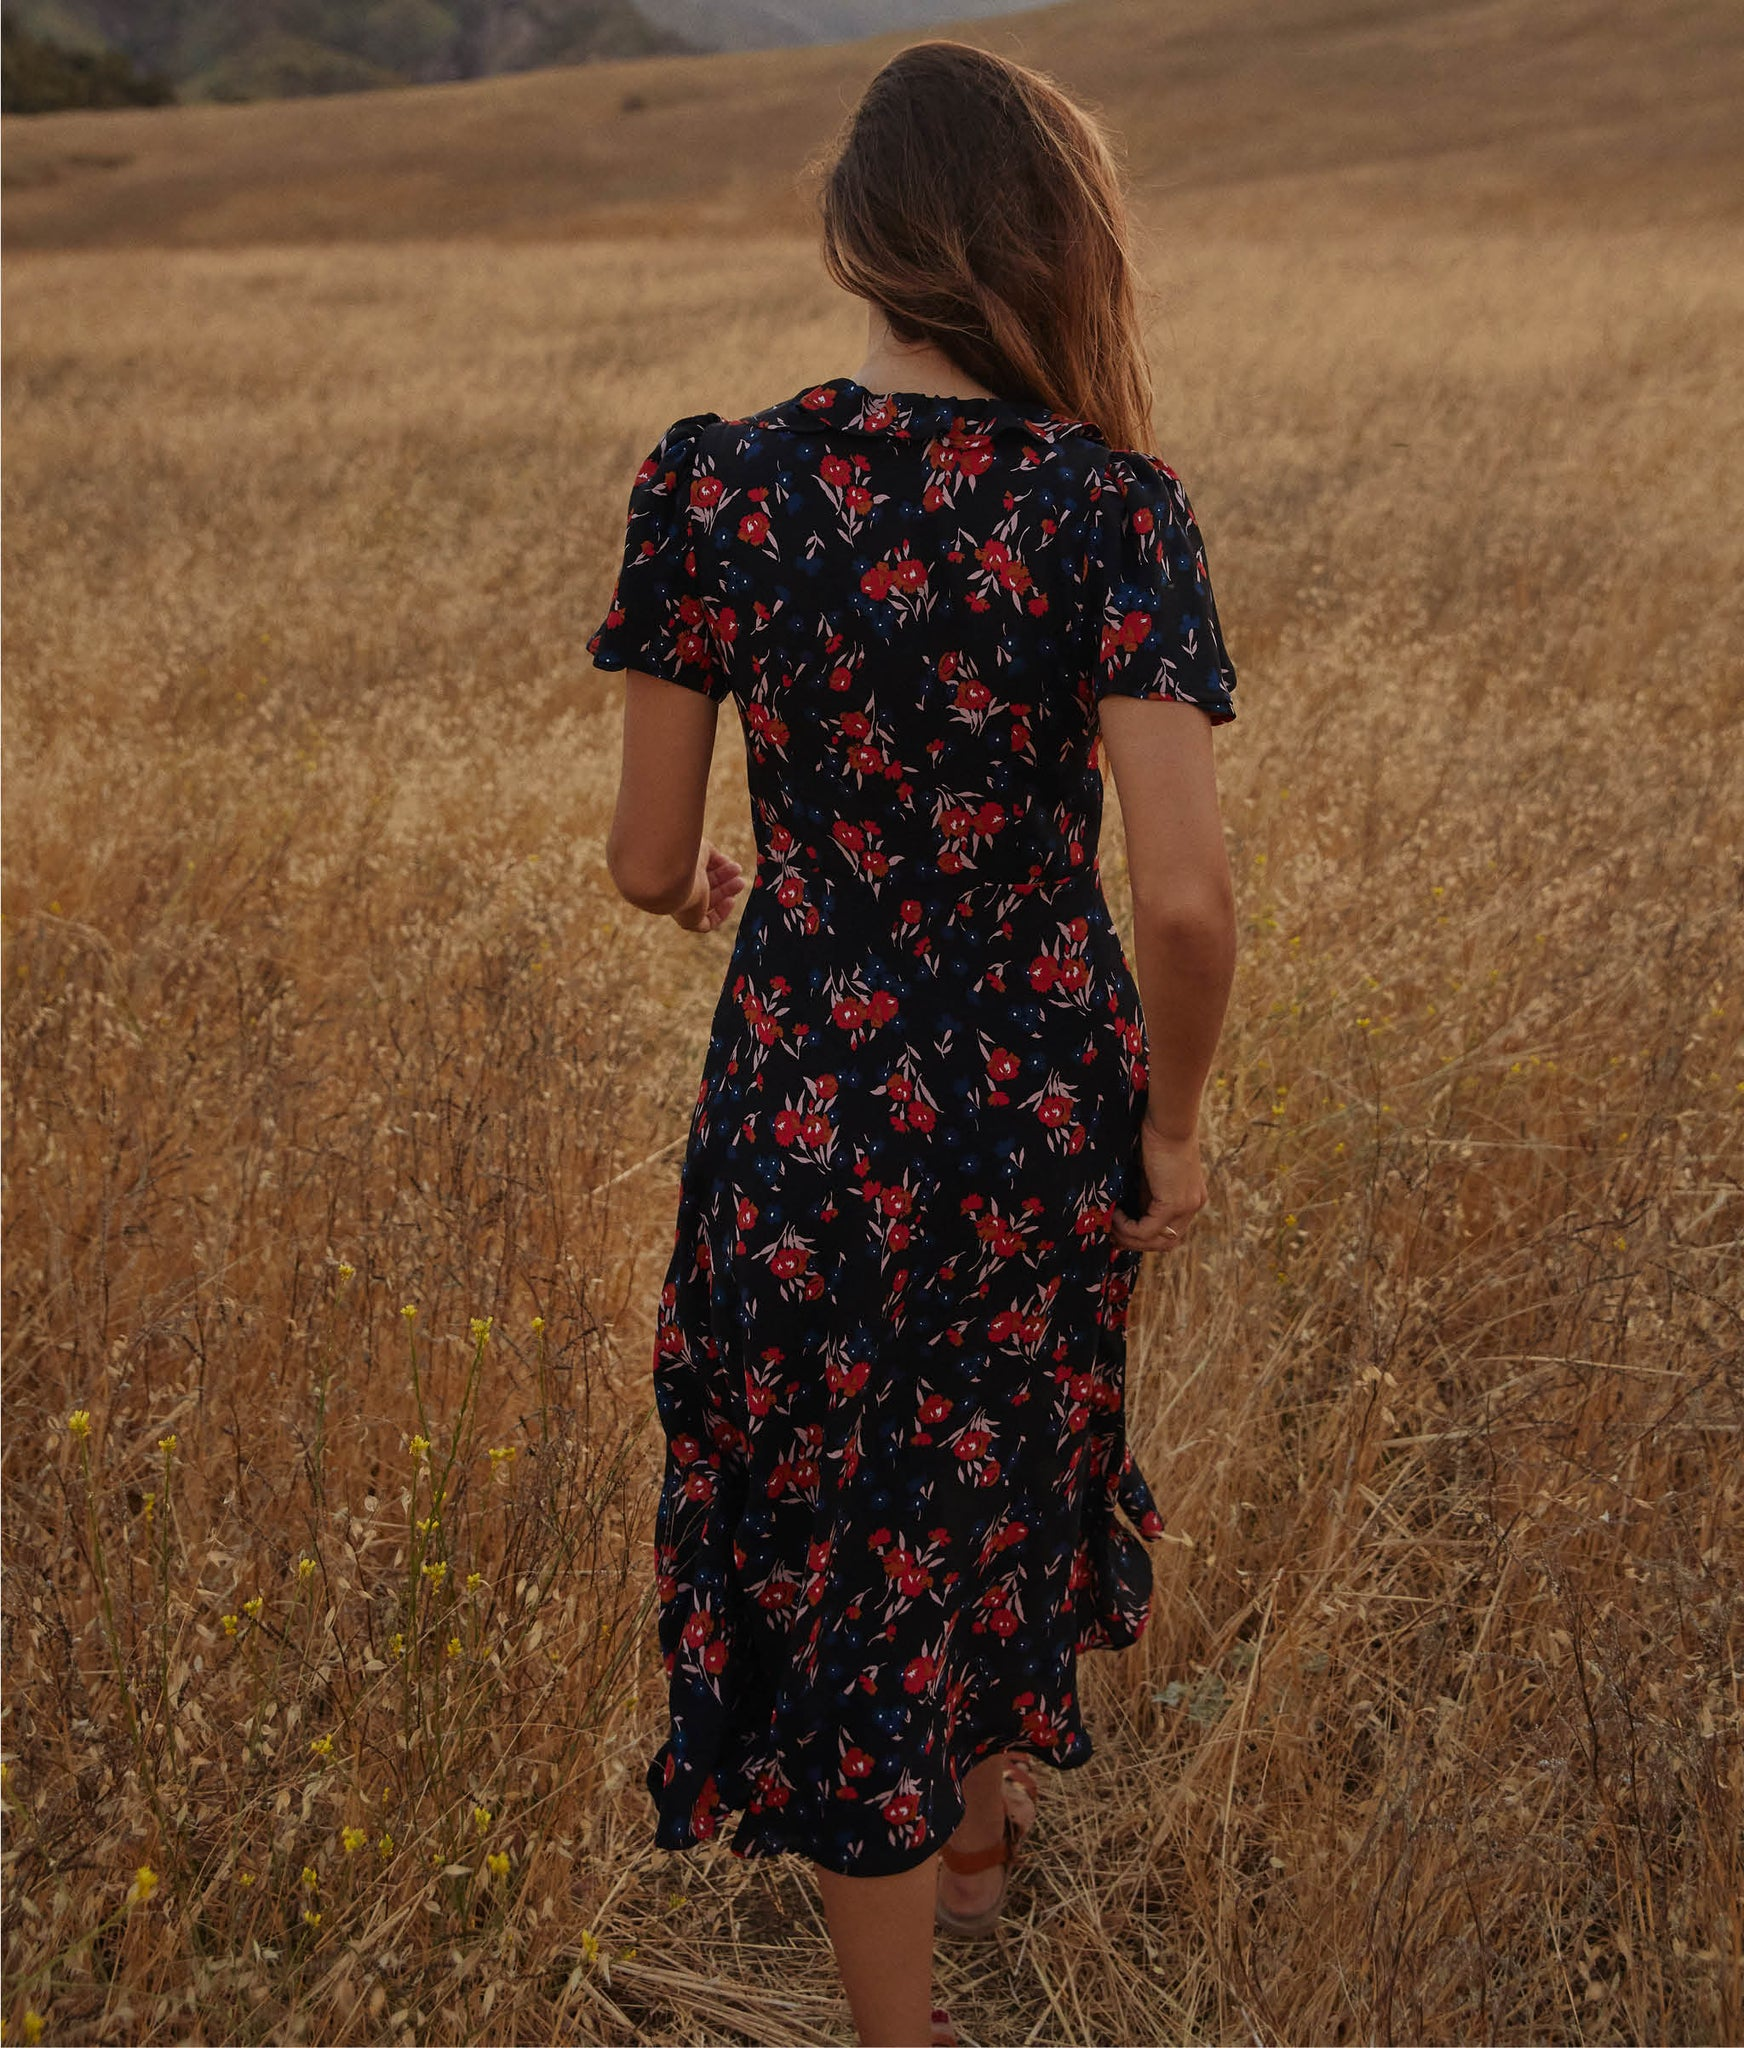 The Daisy Dress | Painted Garden